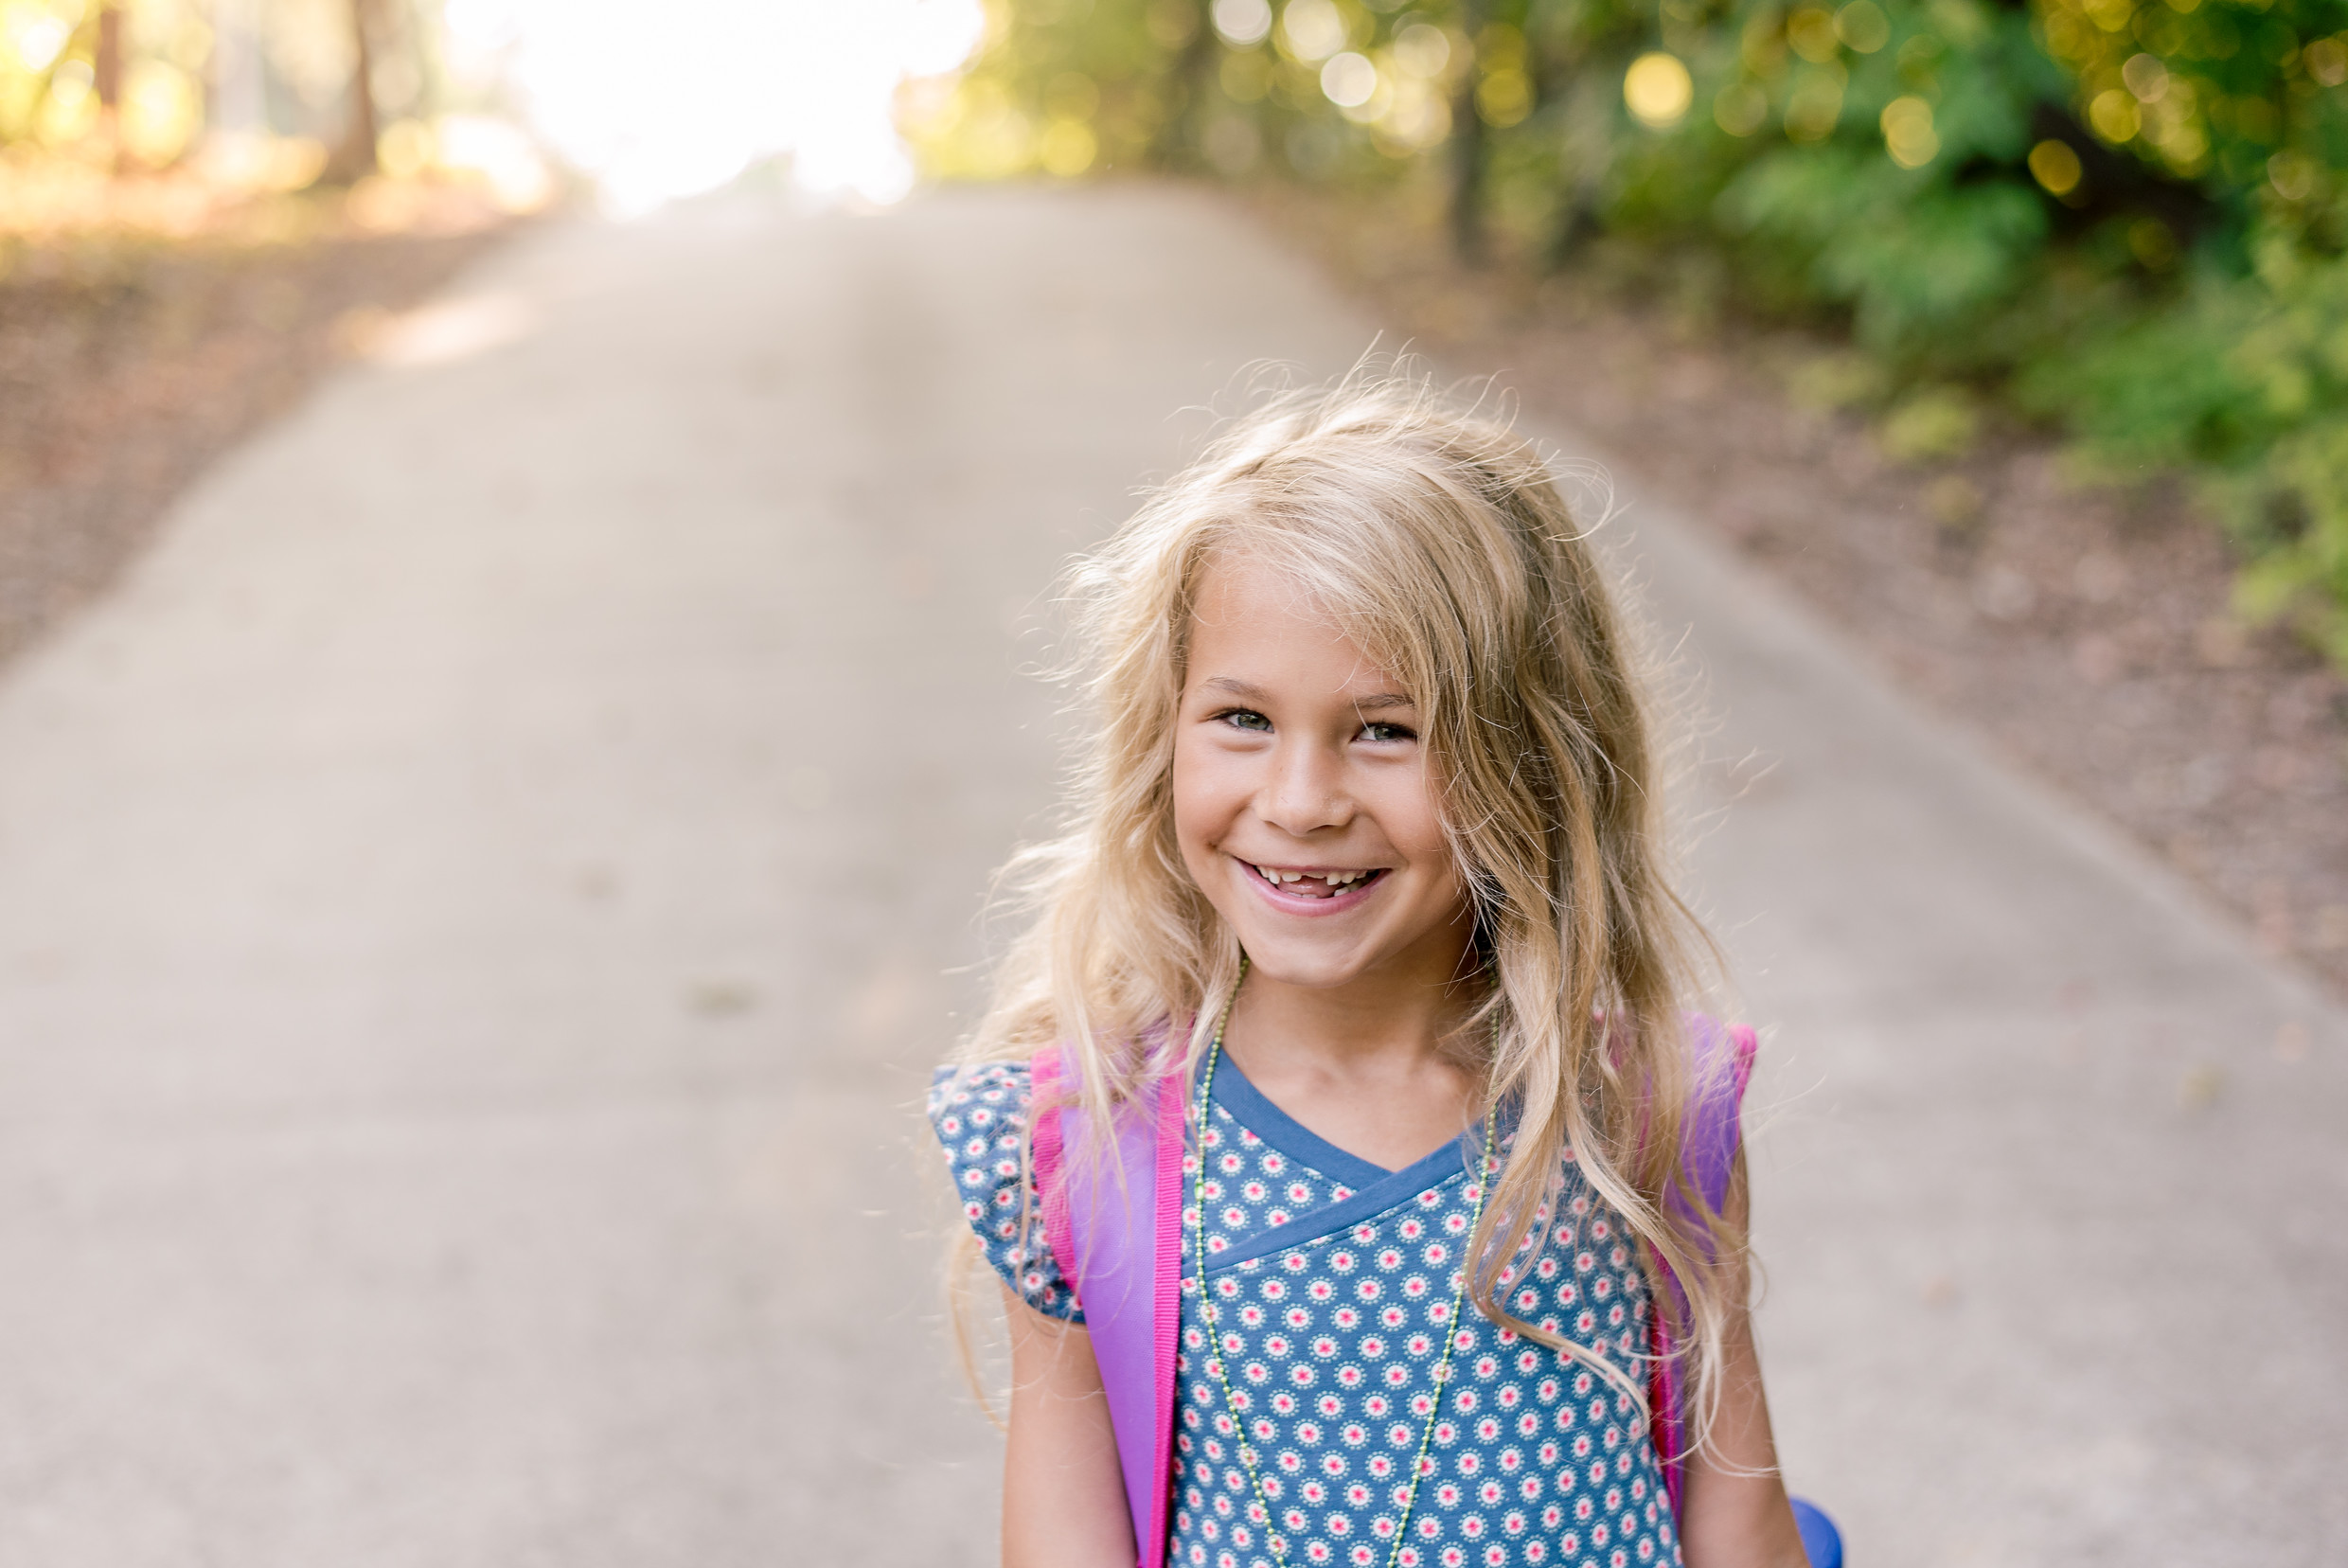 20150824-Cailee 1st Grade-7-Edit-2-2480x1656